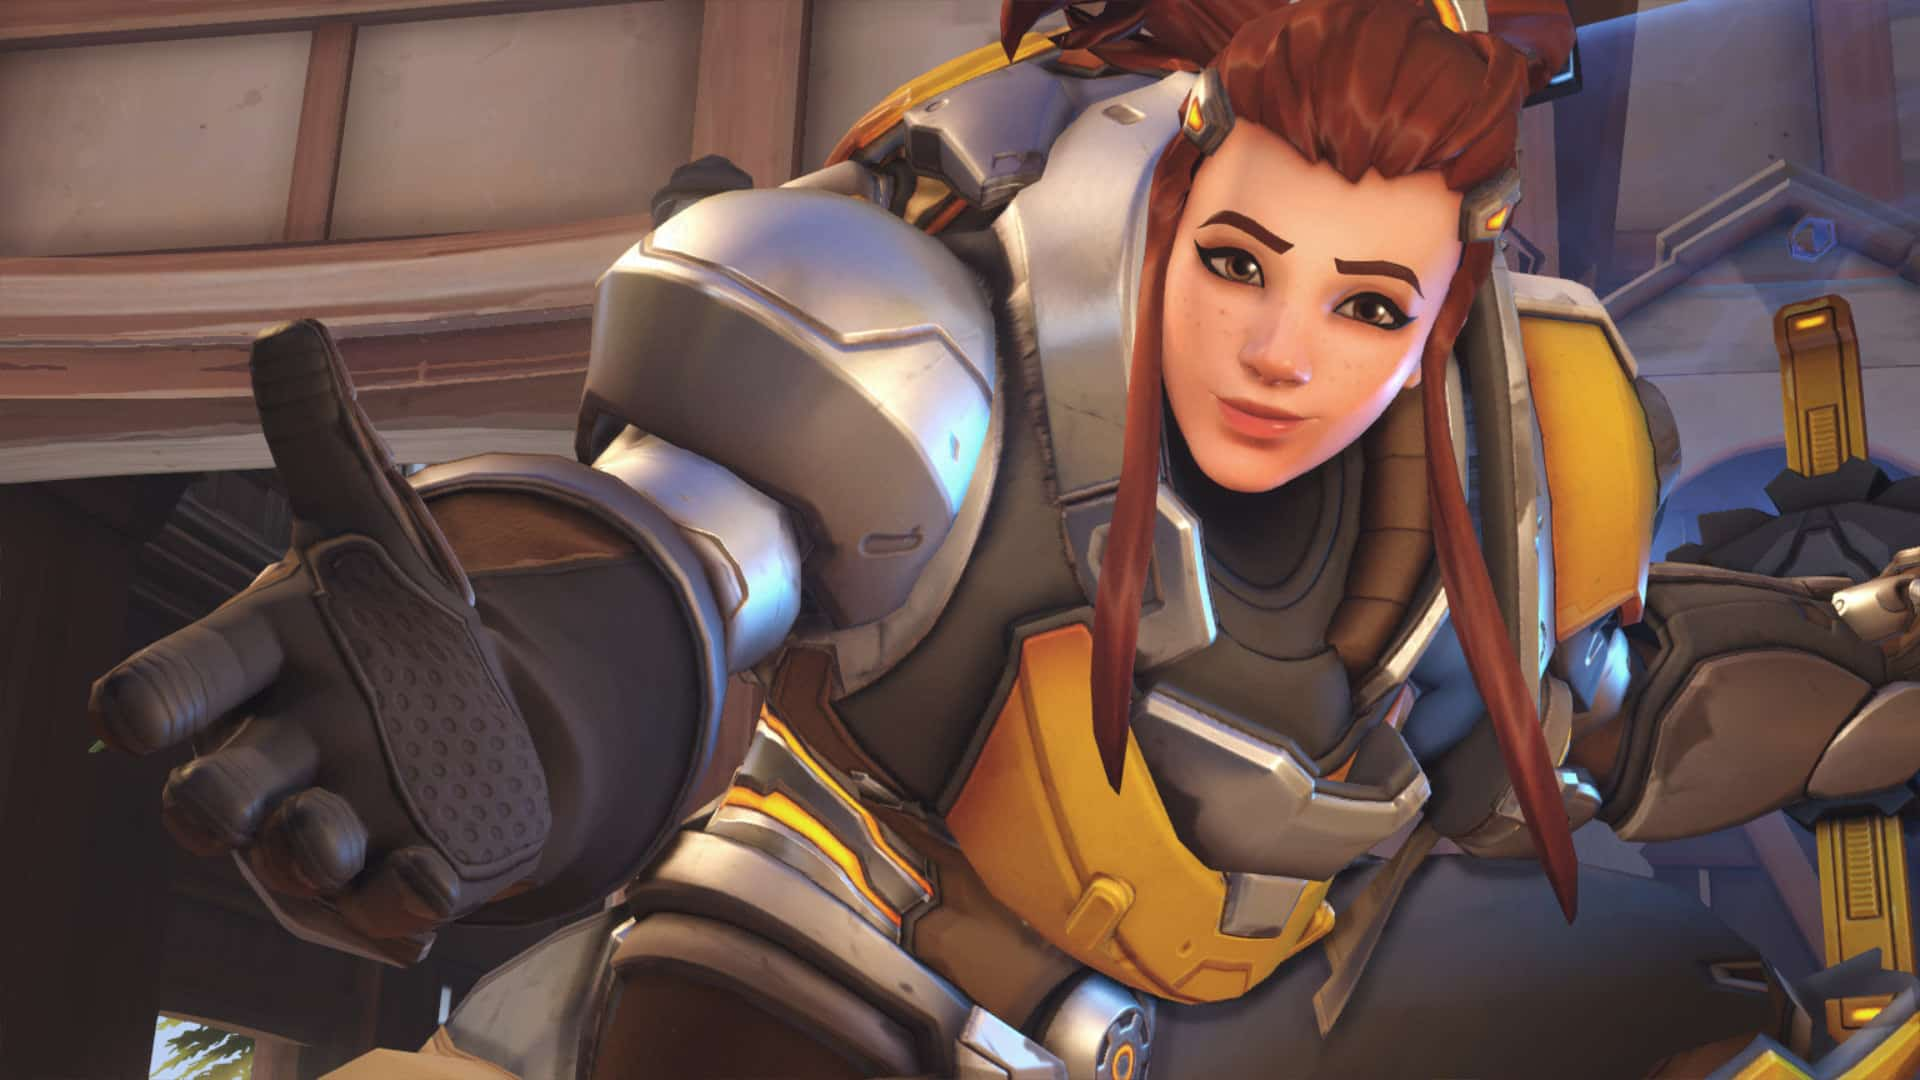 Overwatch Update 2.36 Patch Notes: Brigitte Added, Sombra Tweaked & More